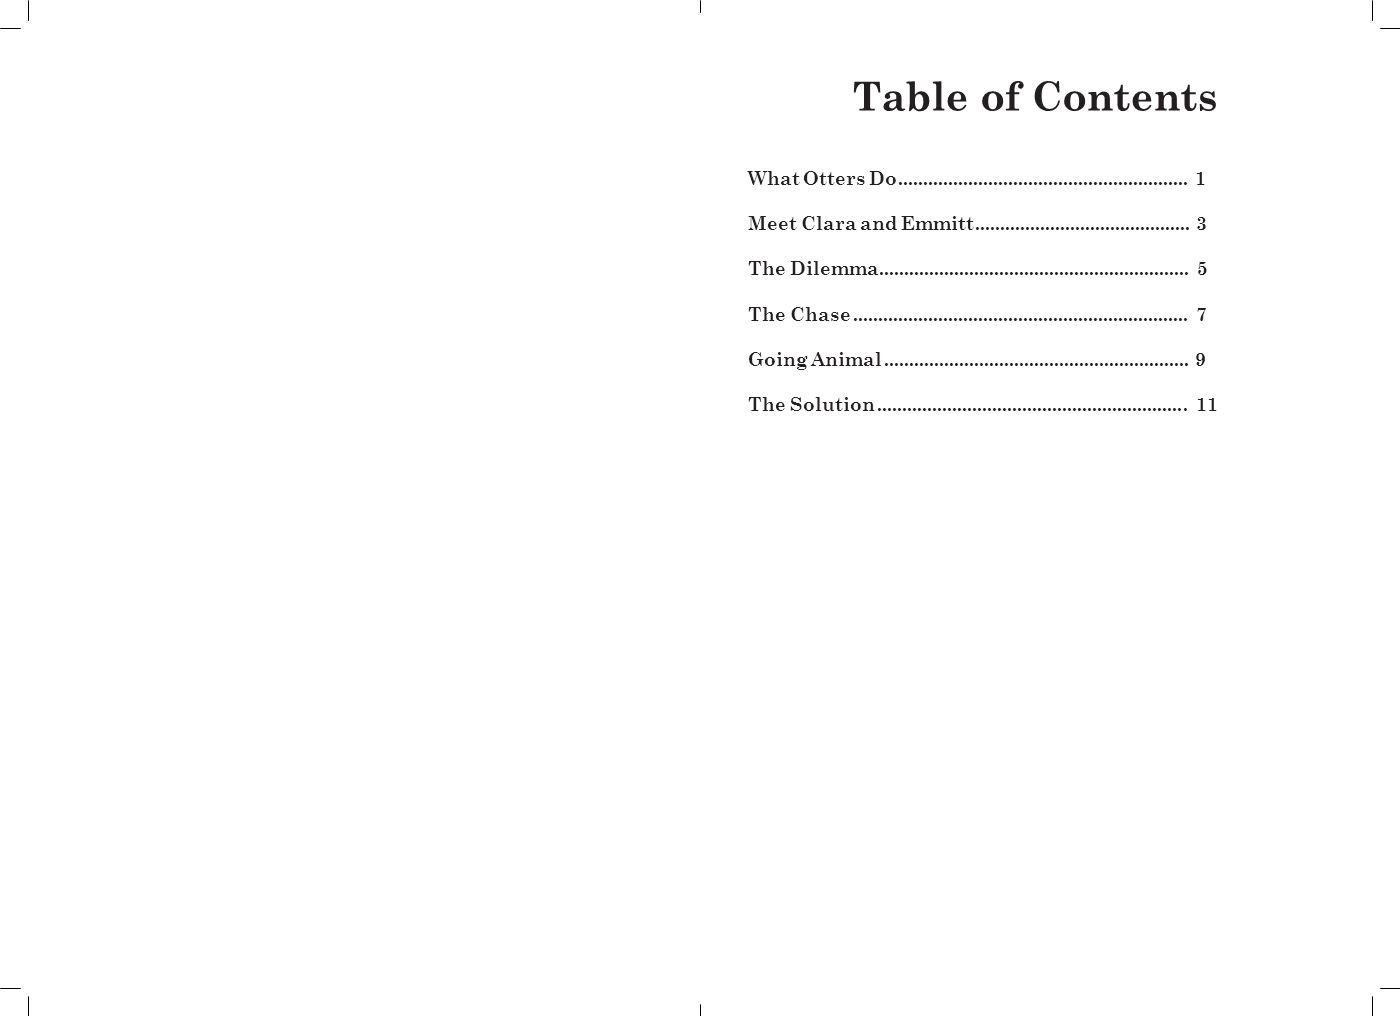 Table of Contents What Otters Do.......................................................... 1 Meet Clara and Emmitt....................................